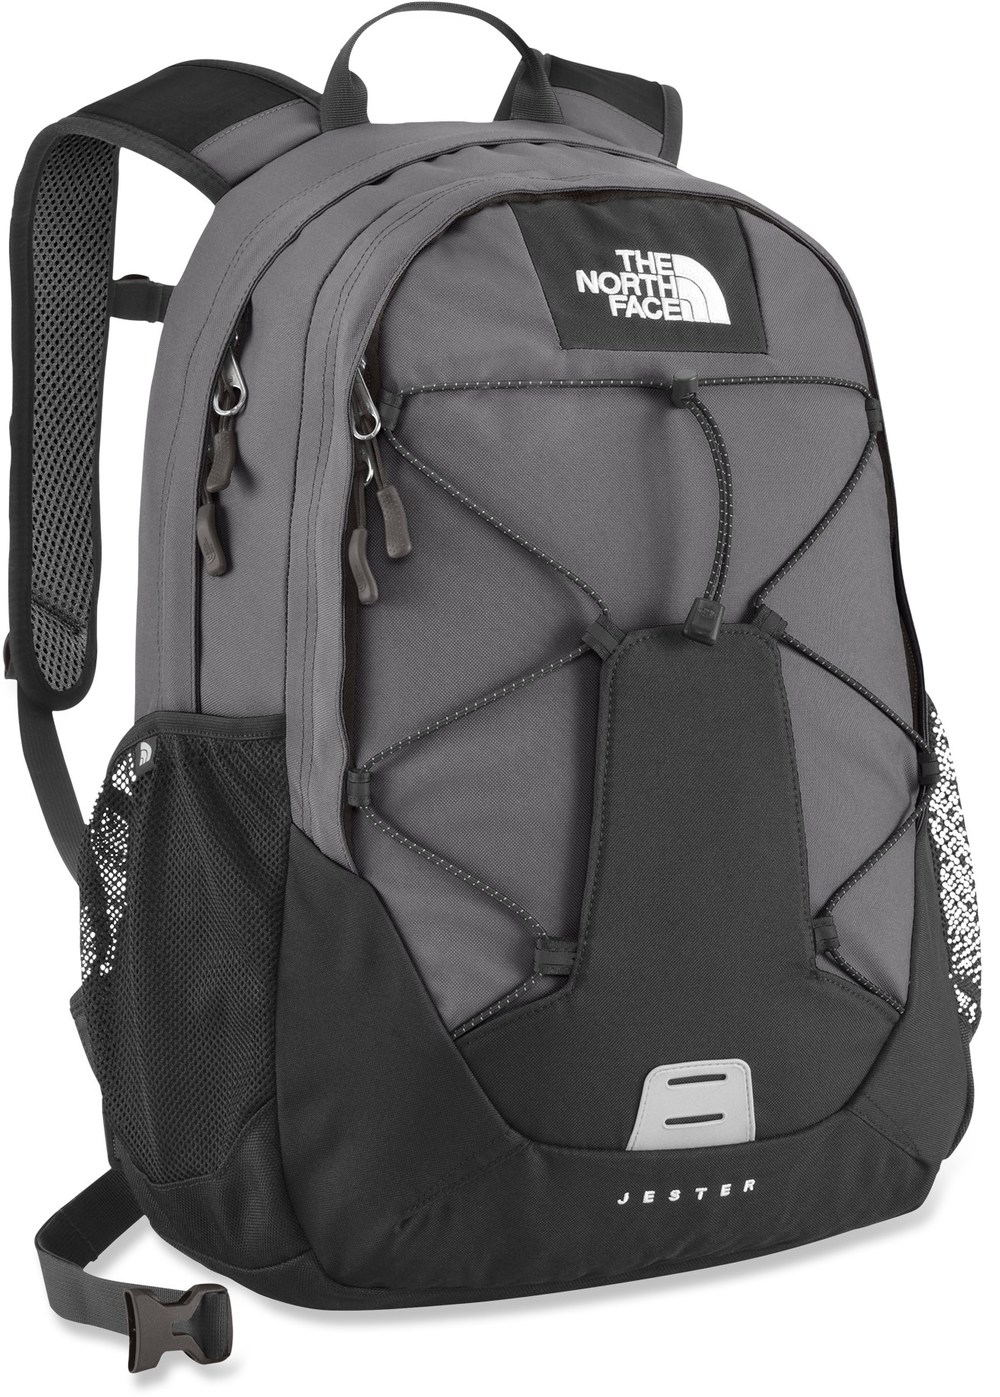 1.  A sturdy, reliable backpack is always #1 on any list.  This guy,  Ben, has put together a nice list of awesome backpacks.